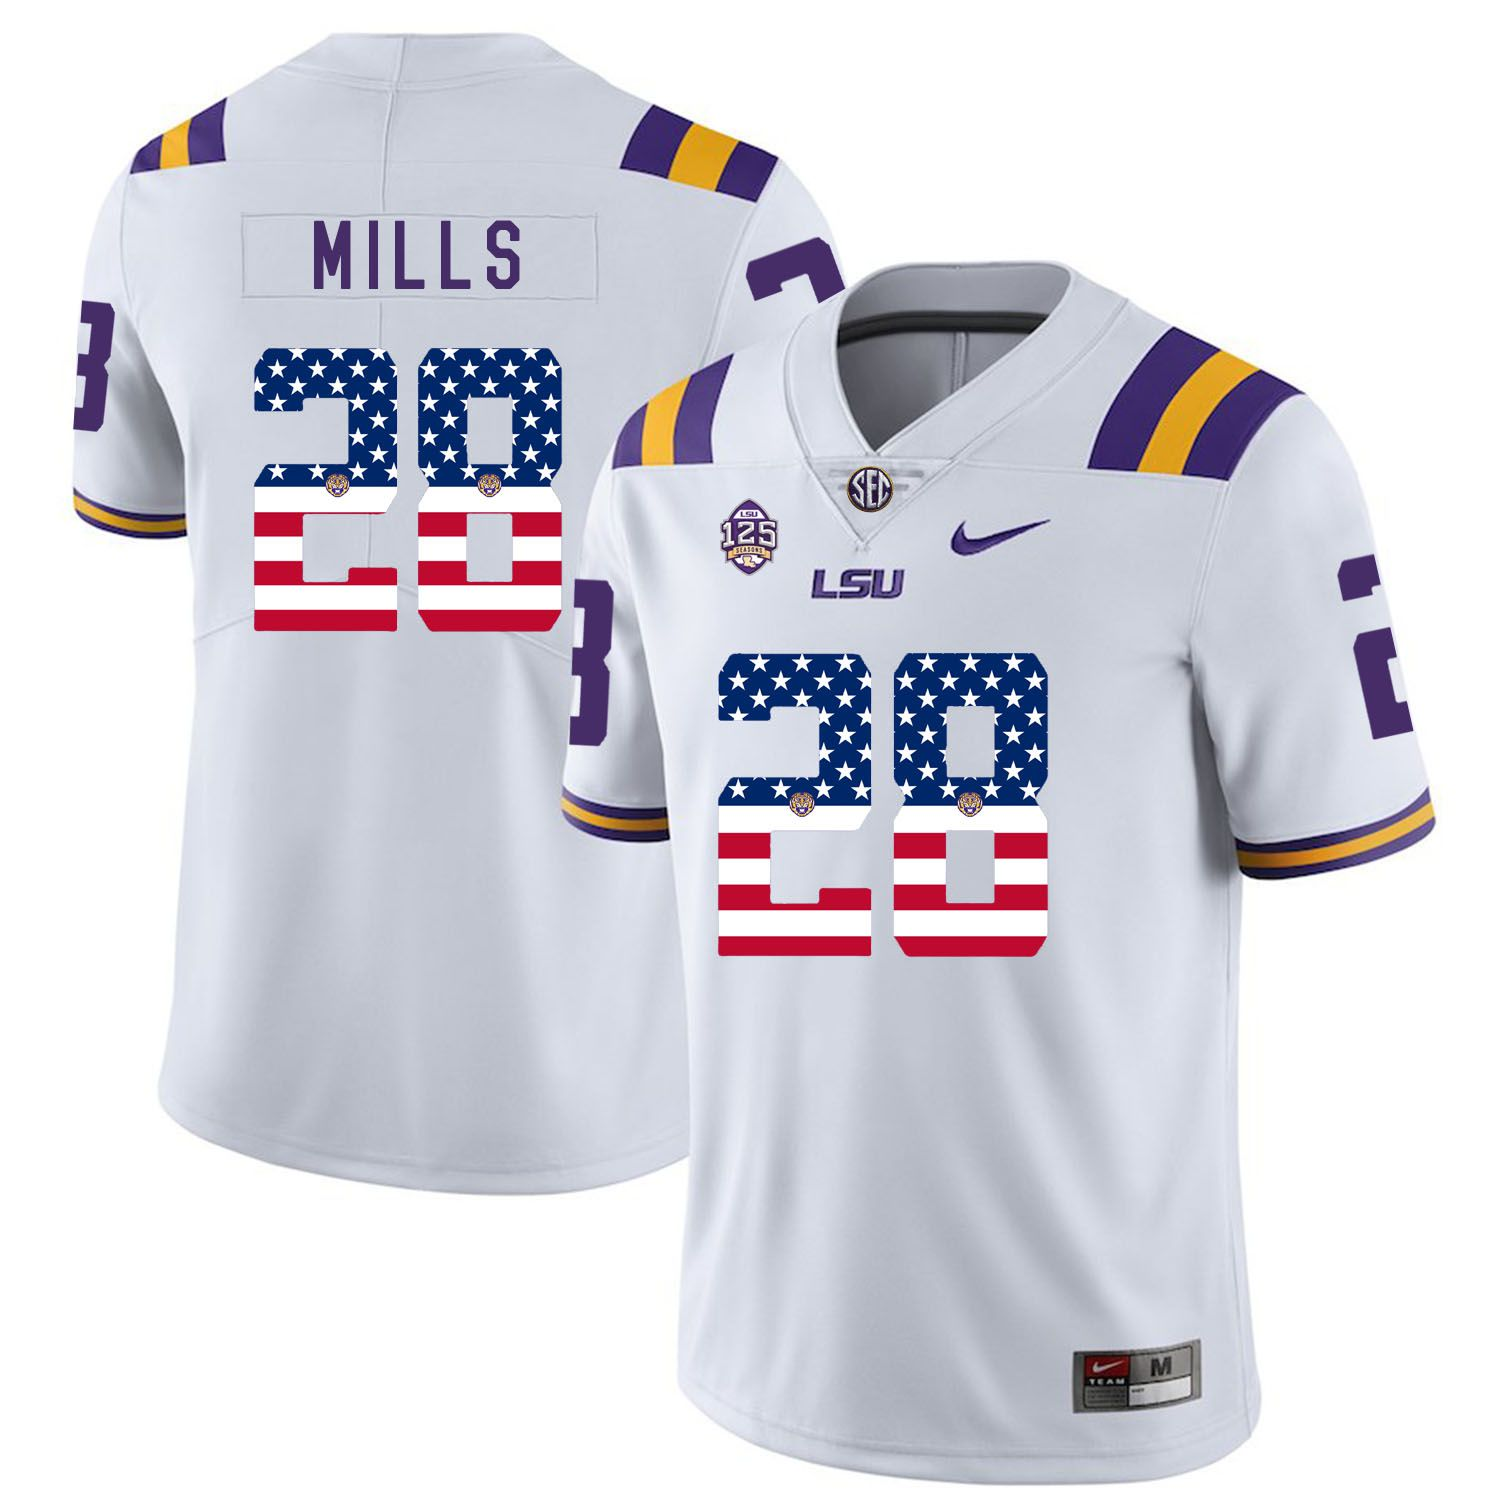 Men LSU Tigers 28 Mills White Flag Customized NCAA Jerseys